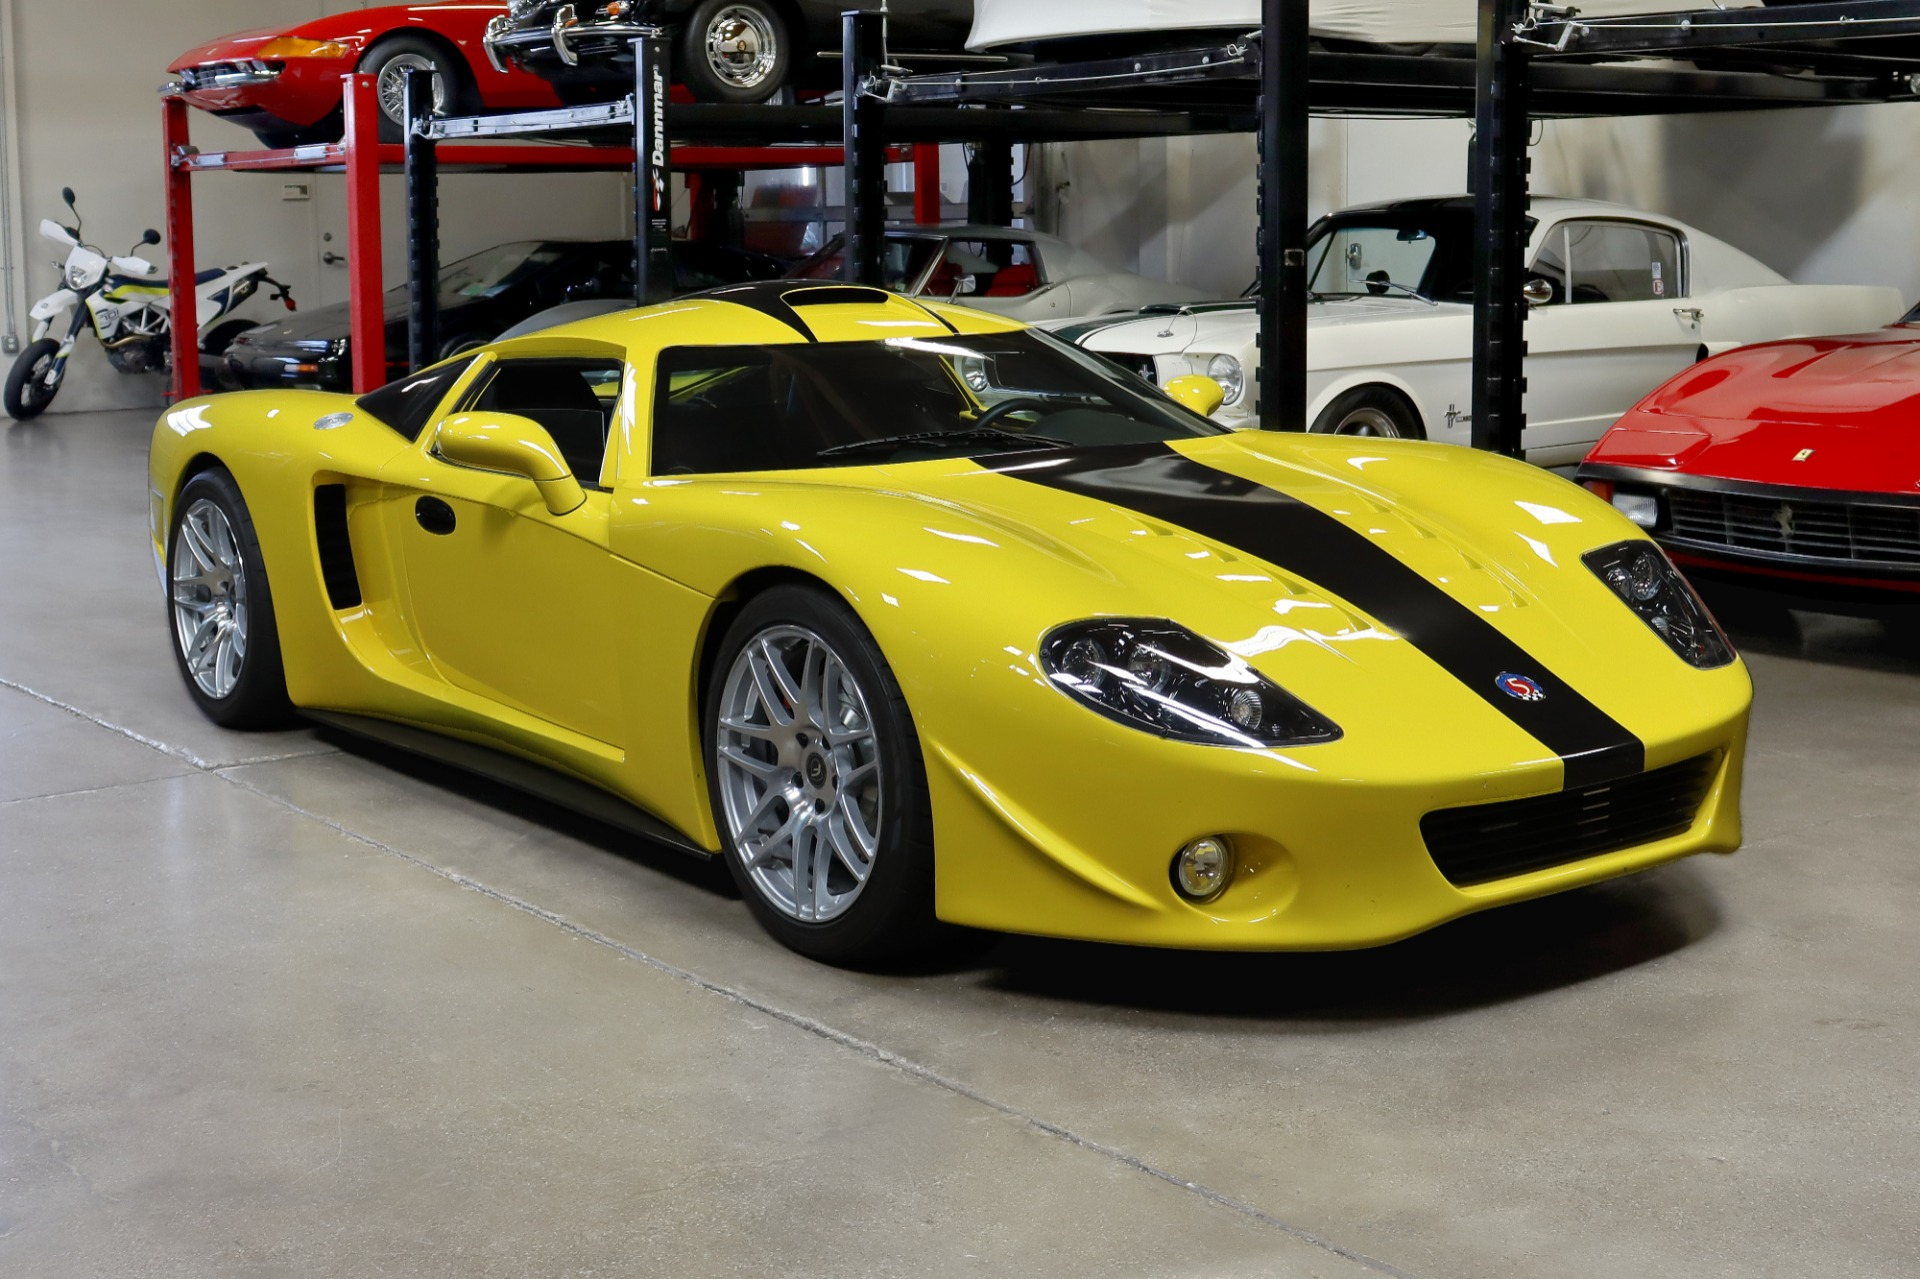 Used 1960 FACTORY FIVE GTLM GT40 for sale $69,995 at San Francisco Sports Cars in San Carlos CA 94070 1